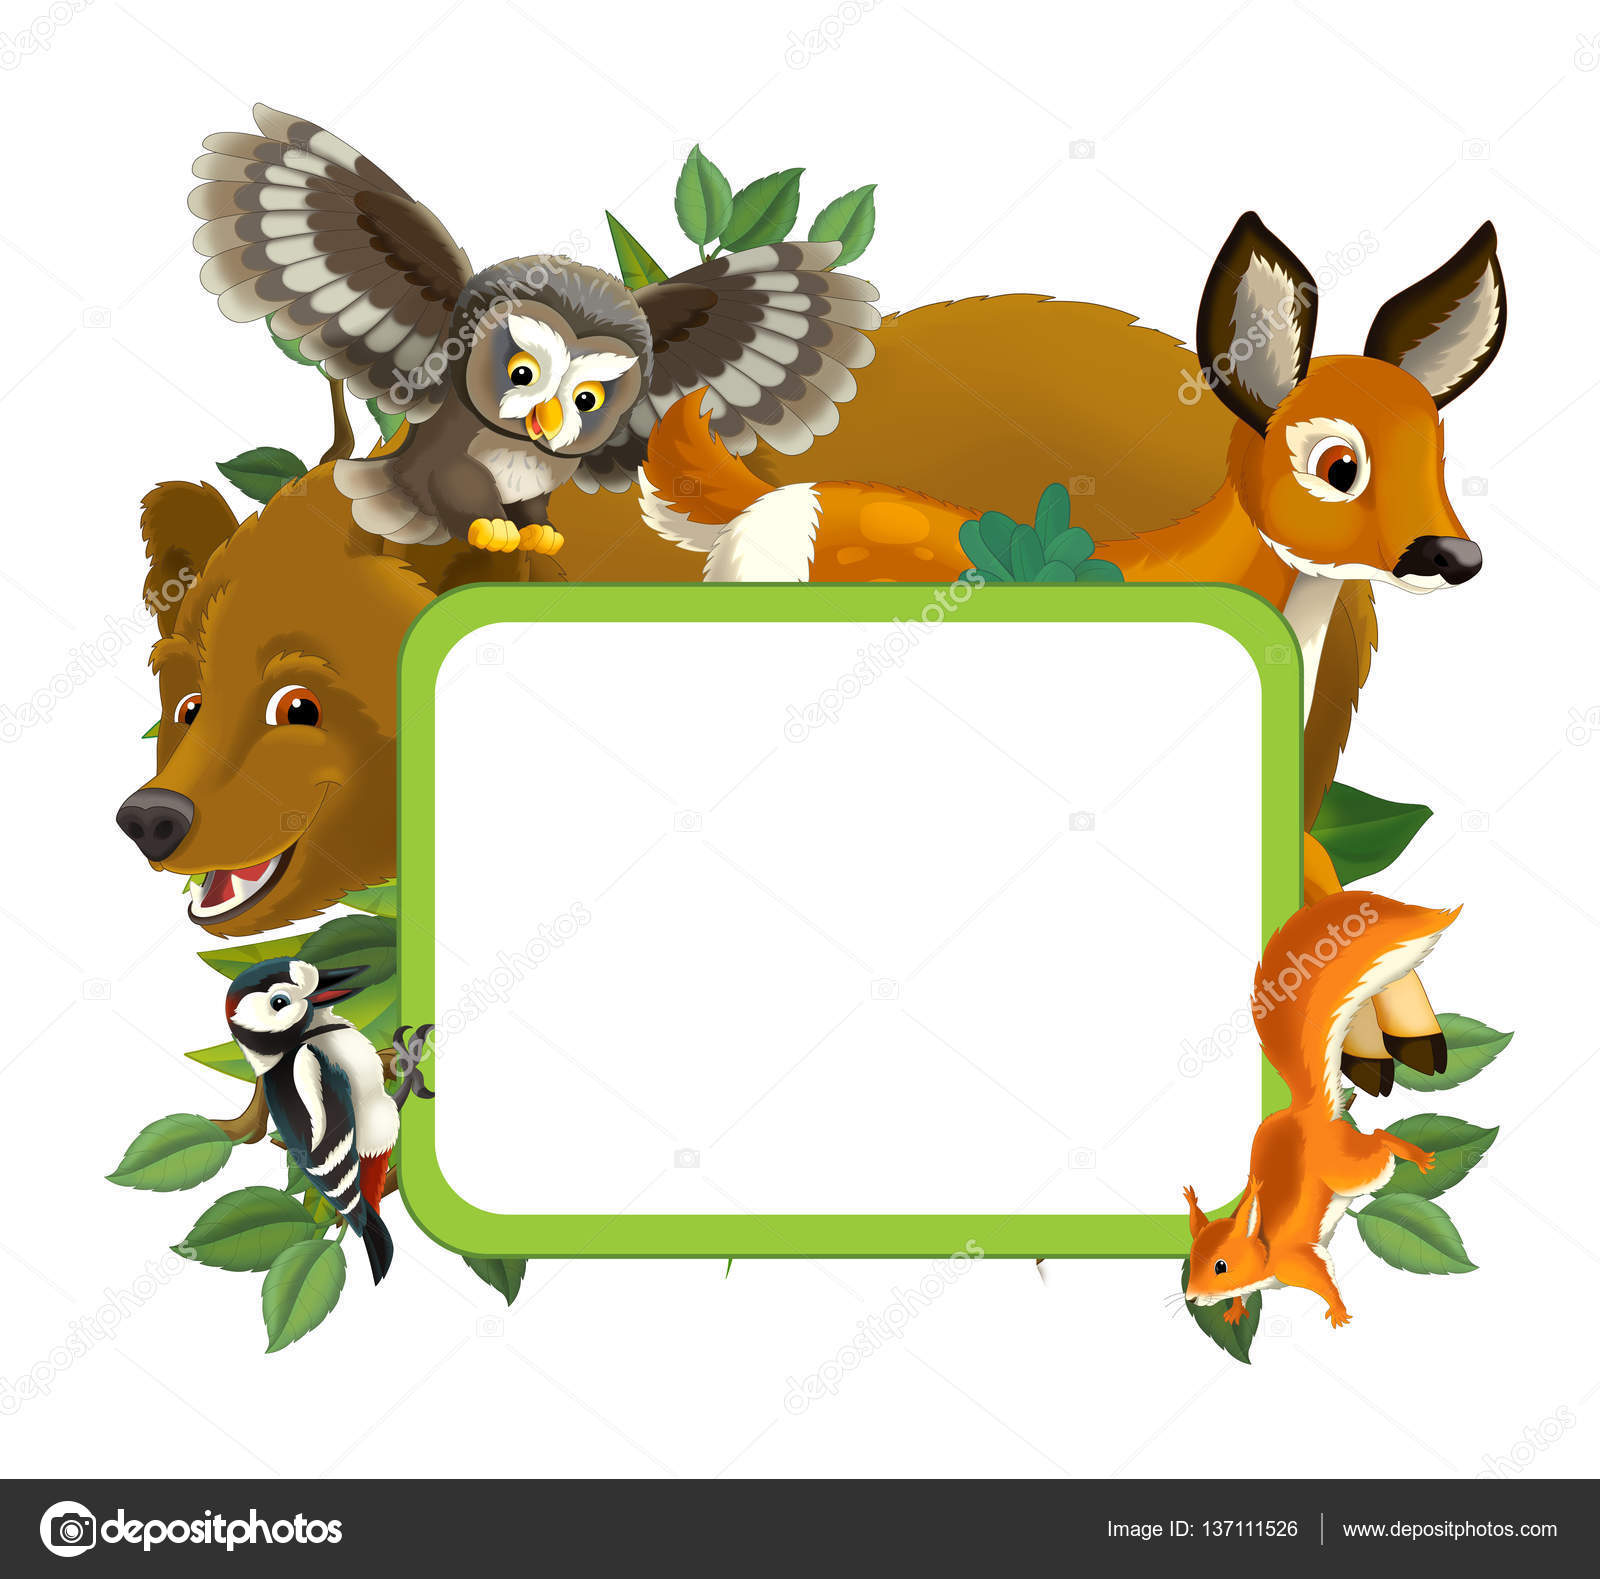 Cartoon frame with animals — Stock Photo © agaes8080 #137111526